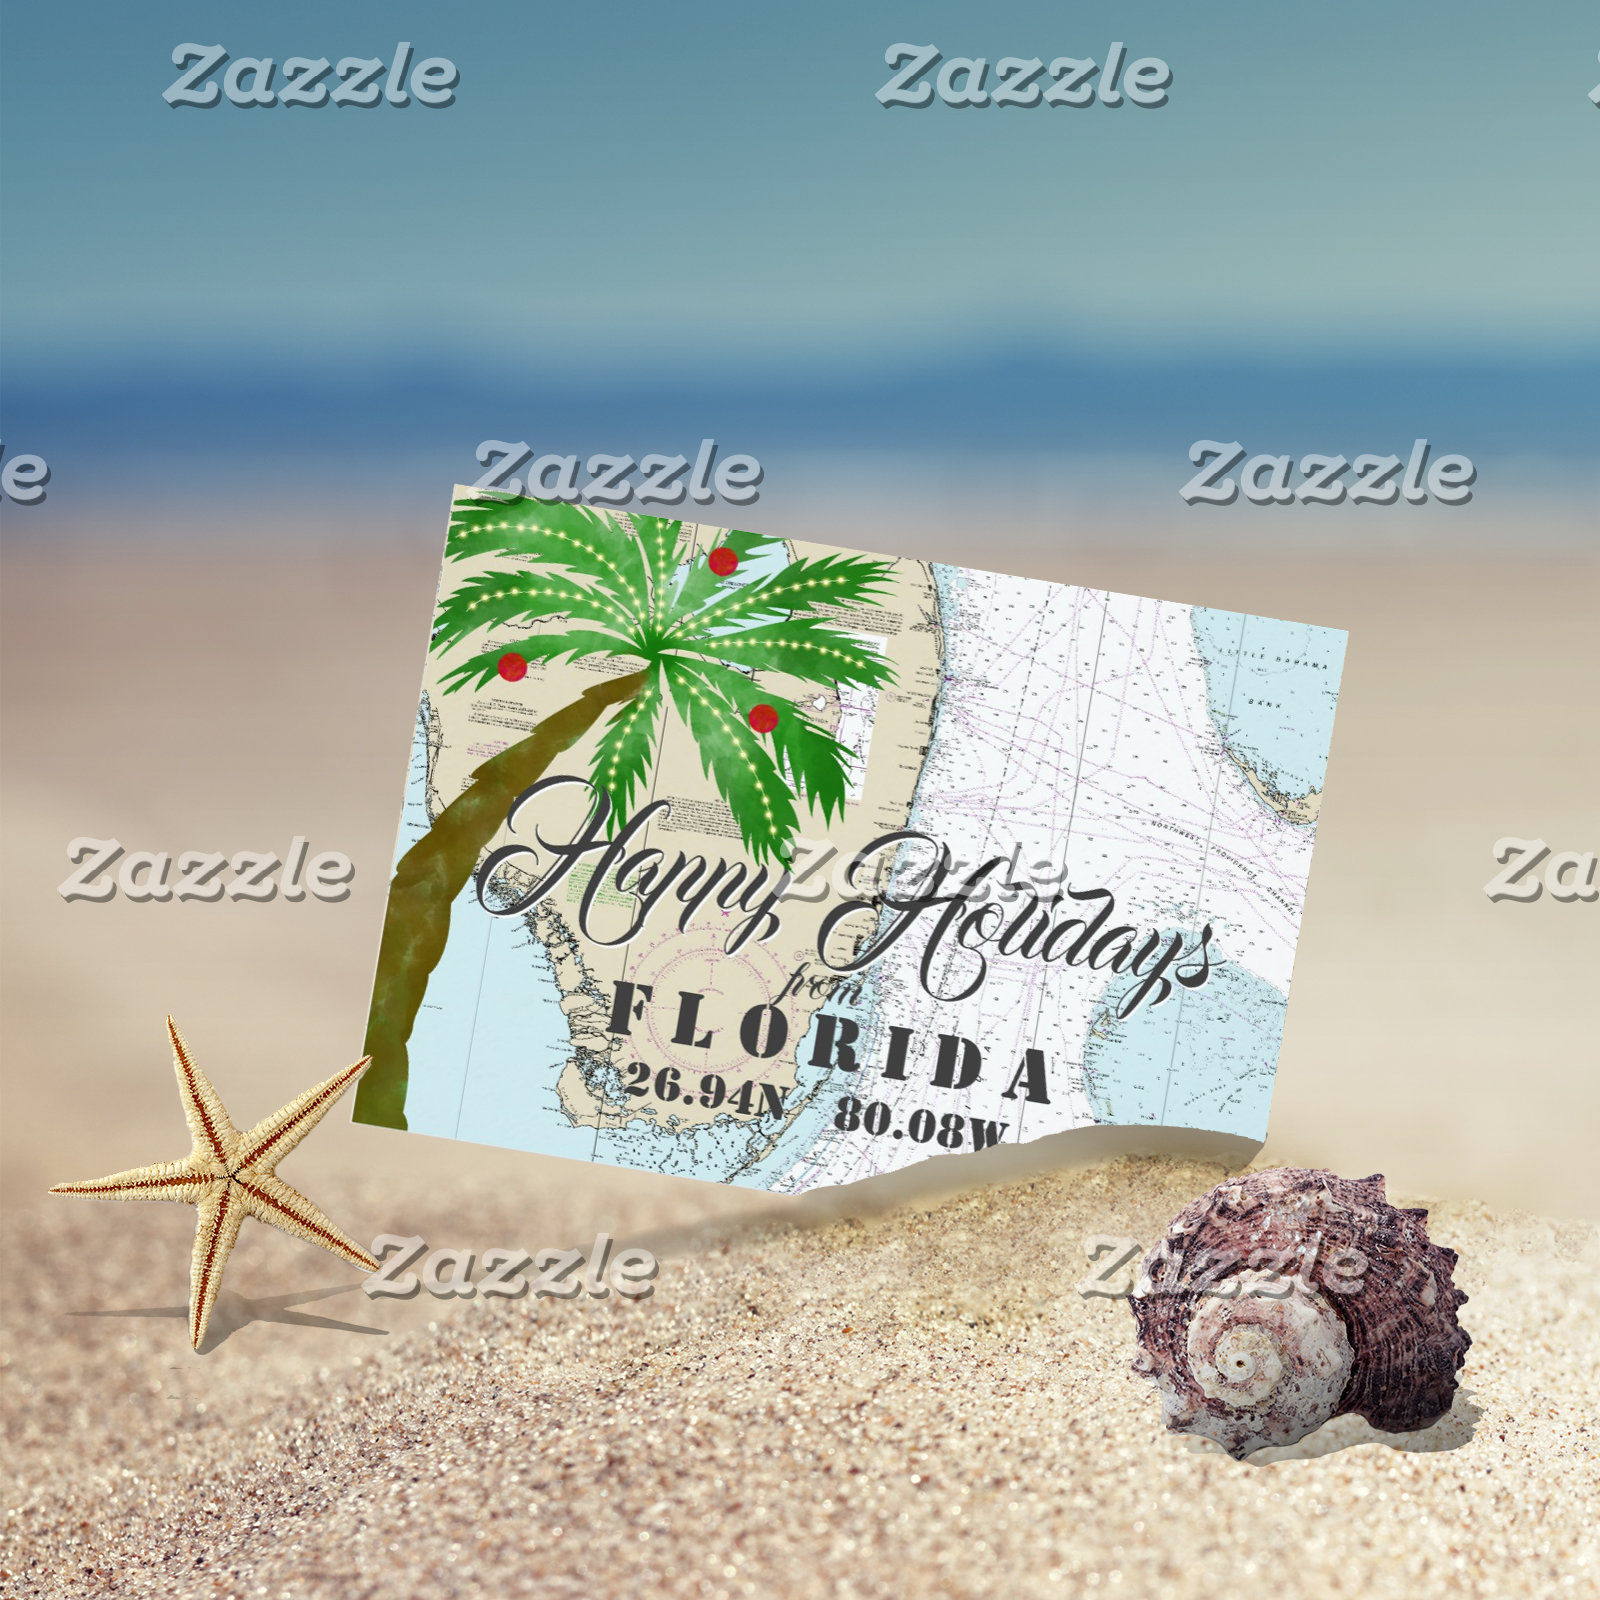 Happy Holidays from Florida Nautical Chart Design